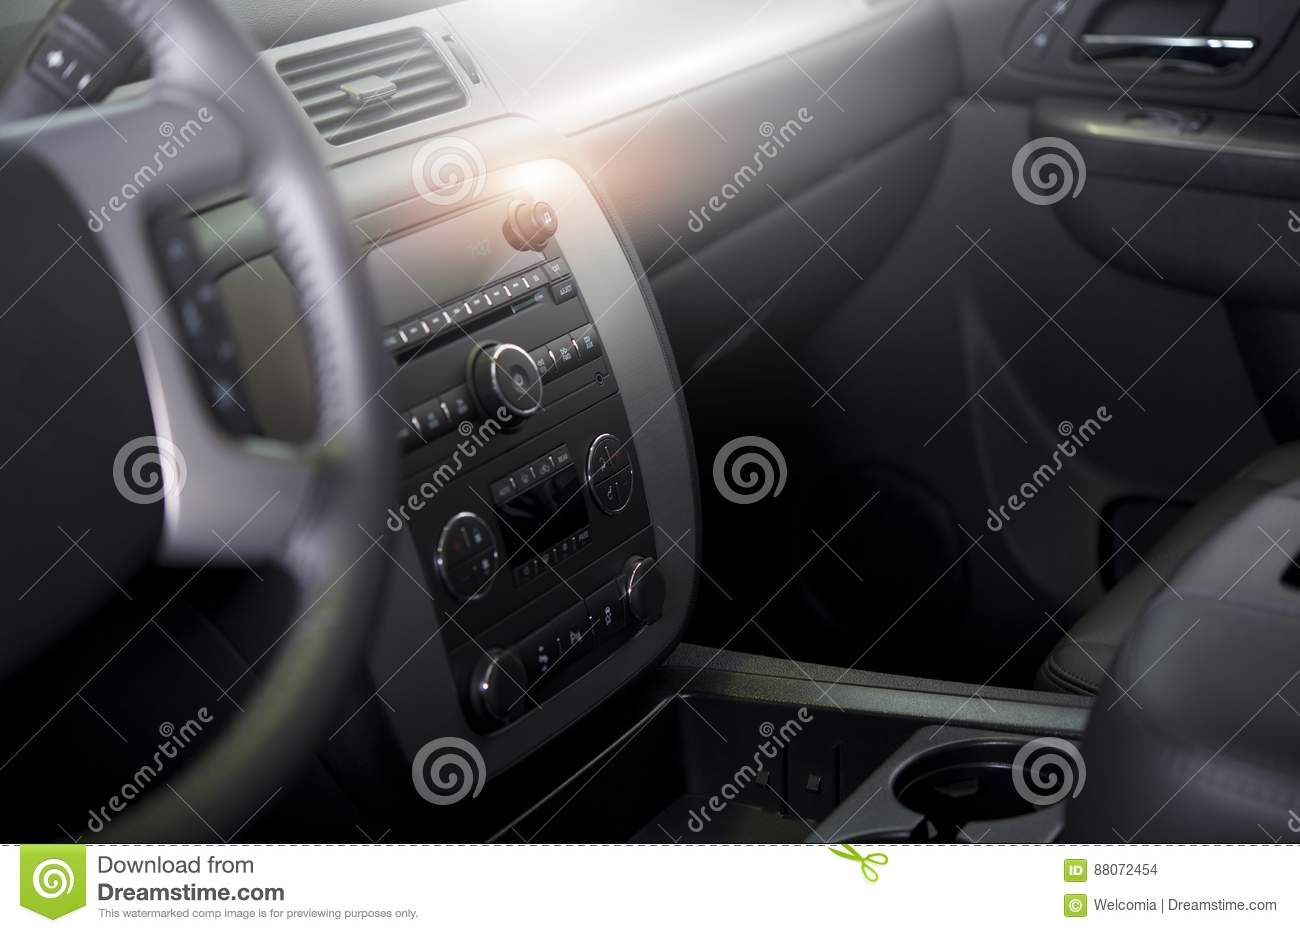 Download Clean Modern Car Interior Stock Photo. Image Of Inside   88072454